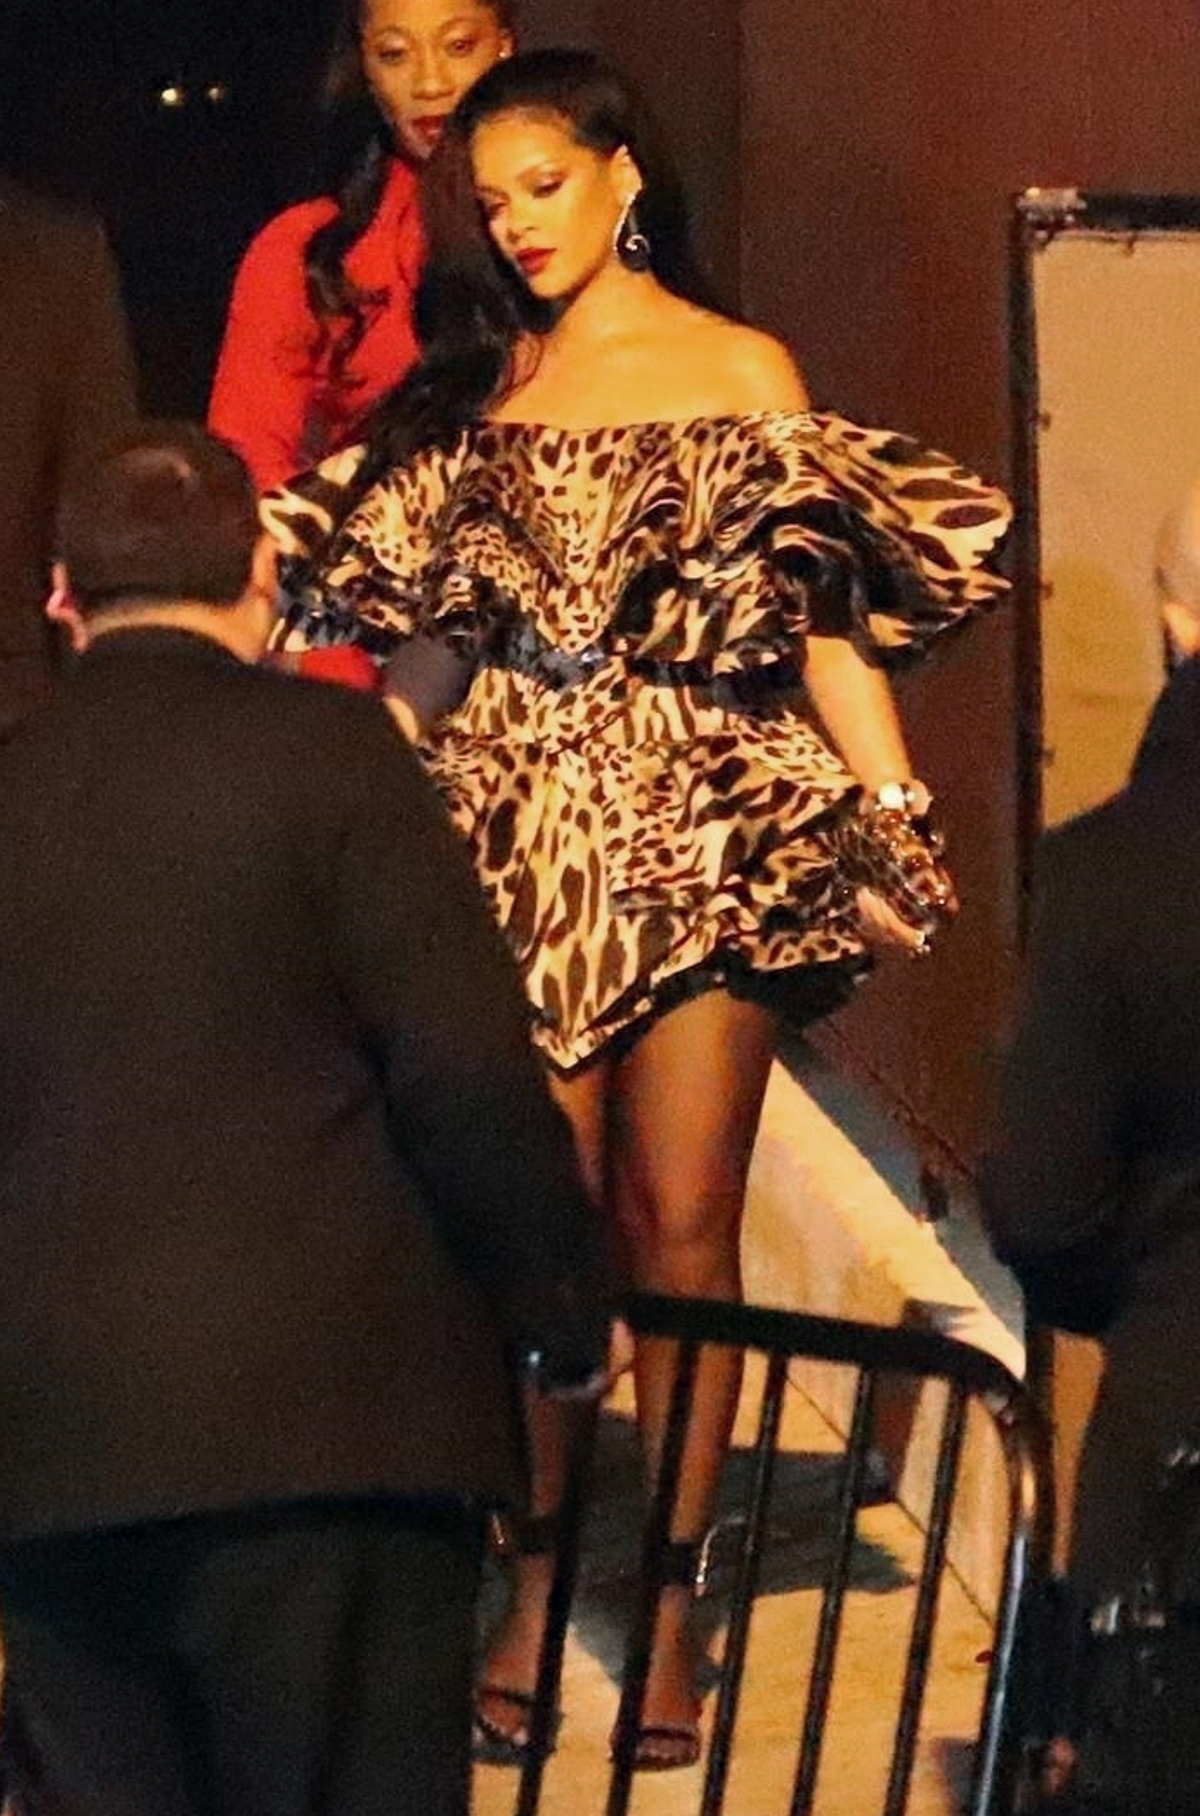 *EXCLUSIVE* Rihanna attends Jay Z and Beyonce's party at Chateau Marmont in West Hollywood